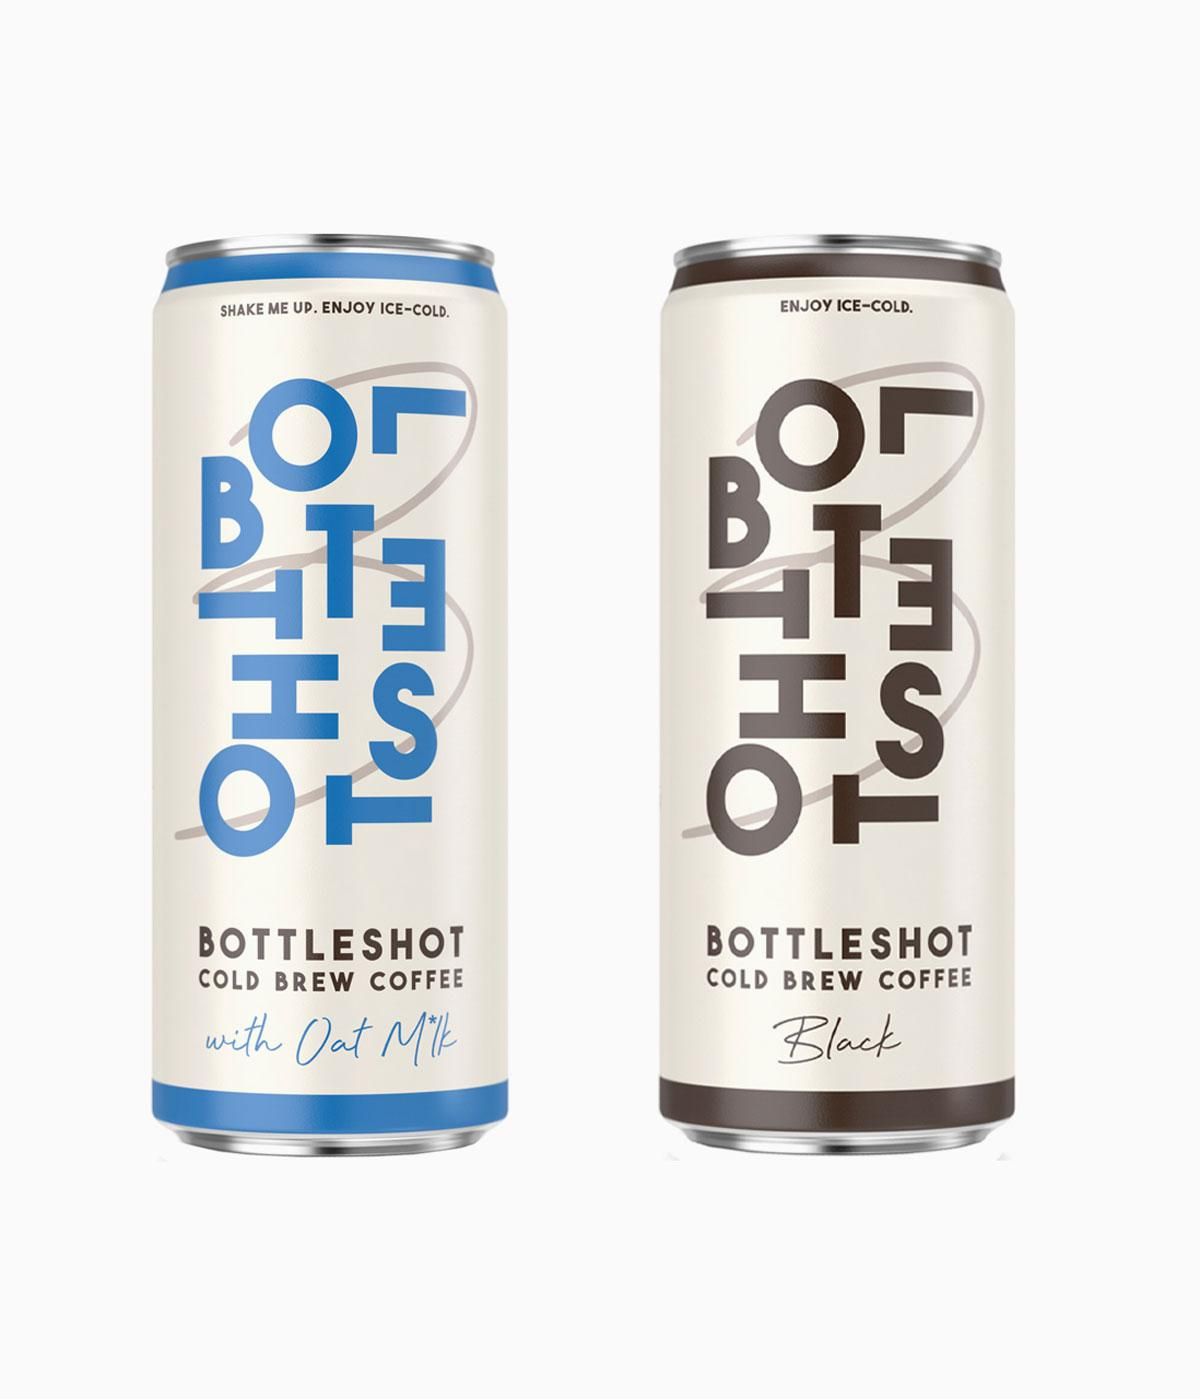 Bottleshot Cold Brew coffee in aluminium cans